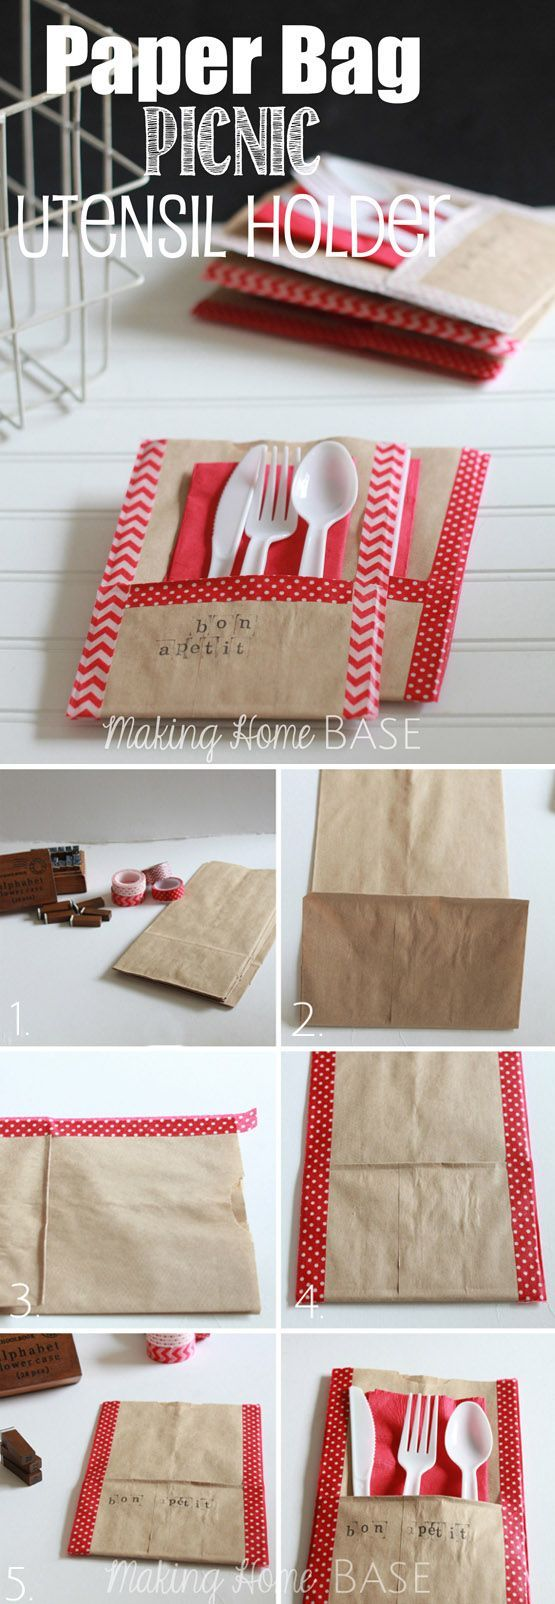 Paper bag picnic utensil holder DIY